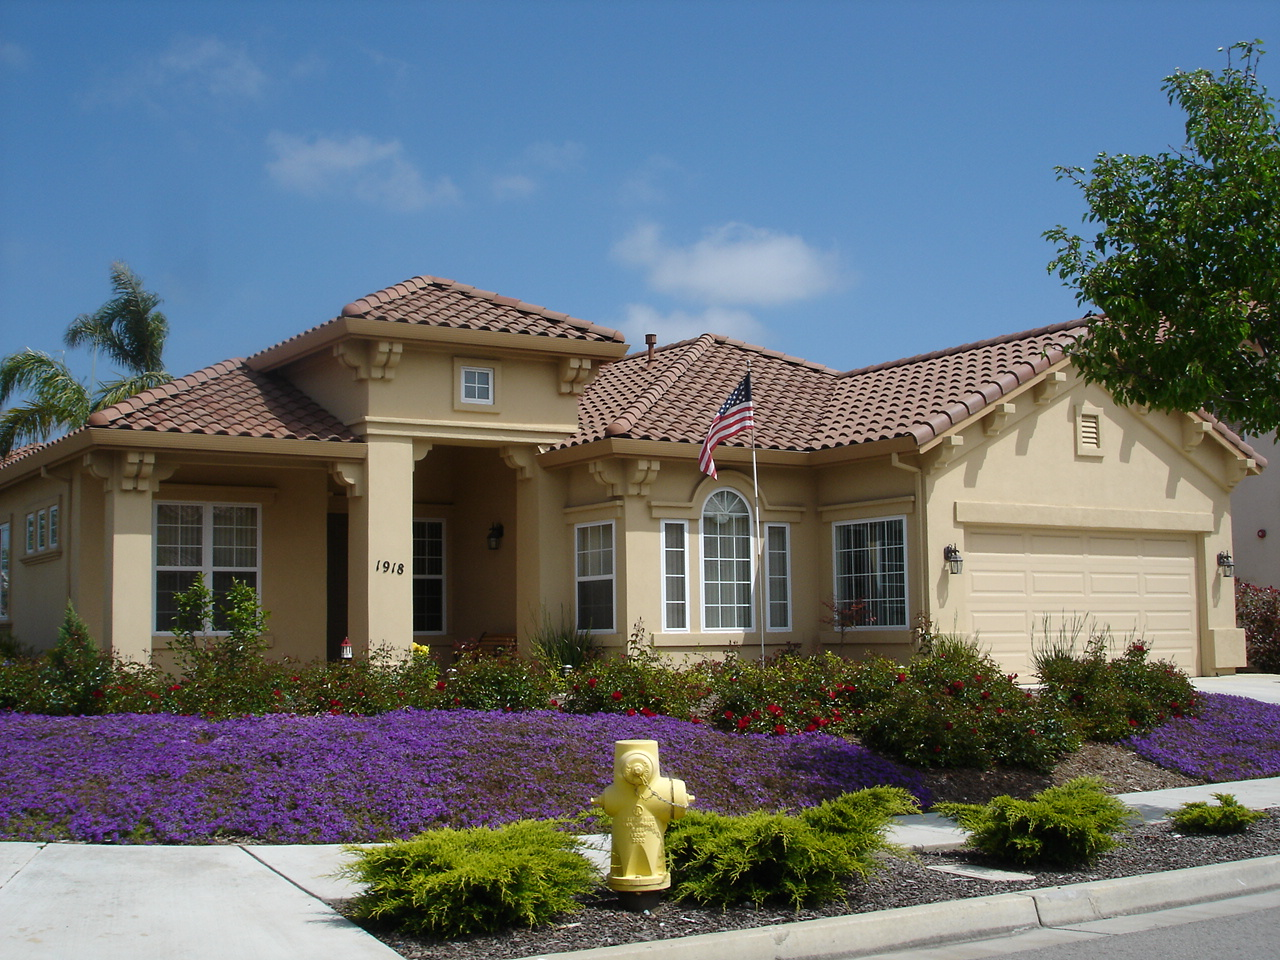 File:Ranch style home in Salinas, California.JPG  Wikimedia Commons